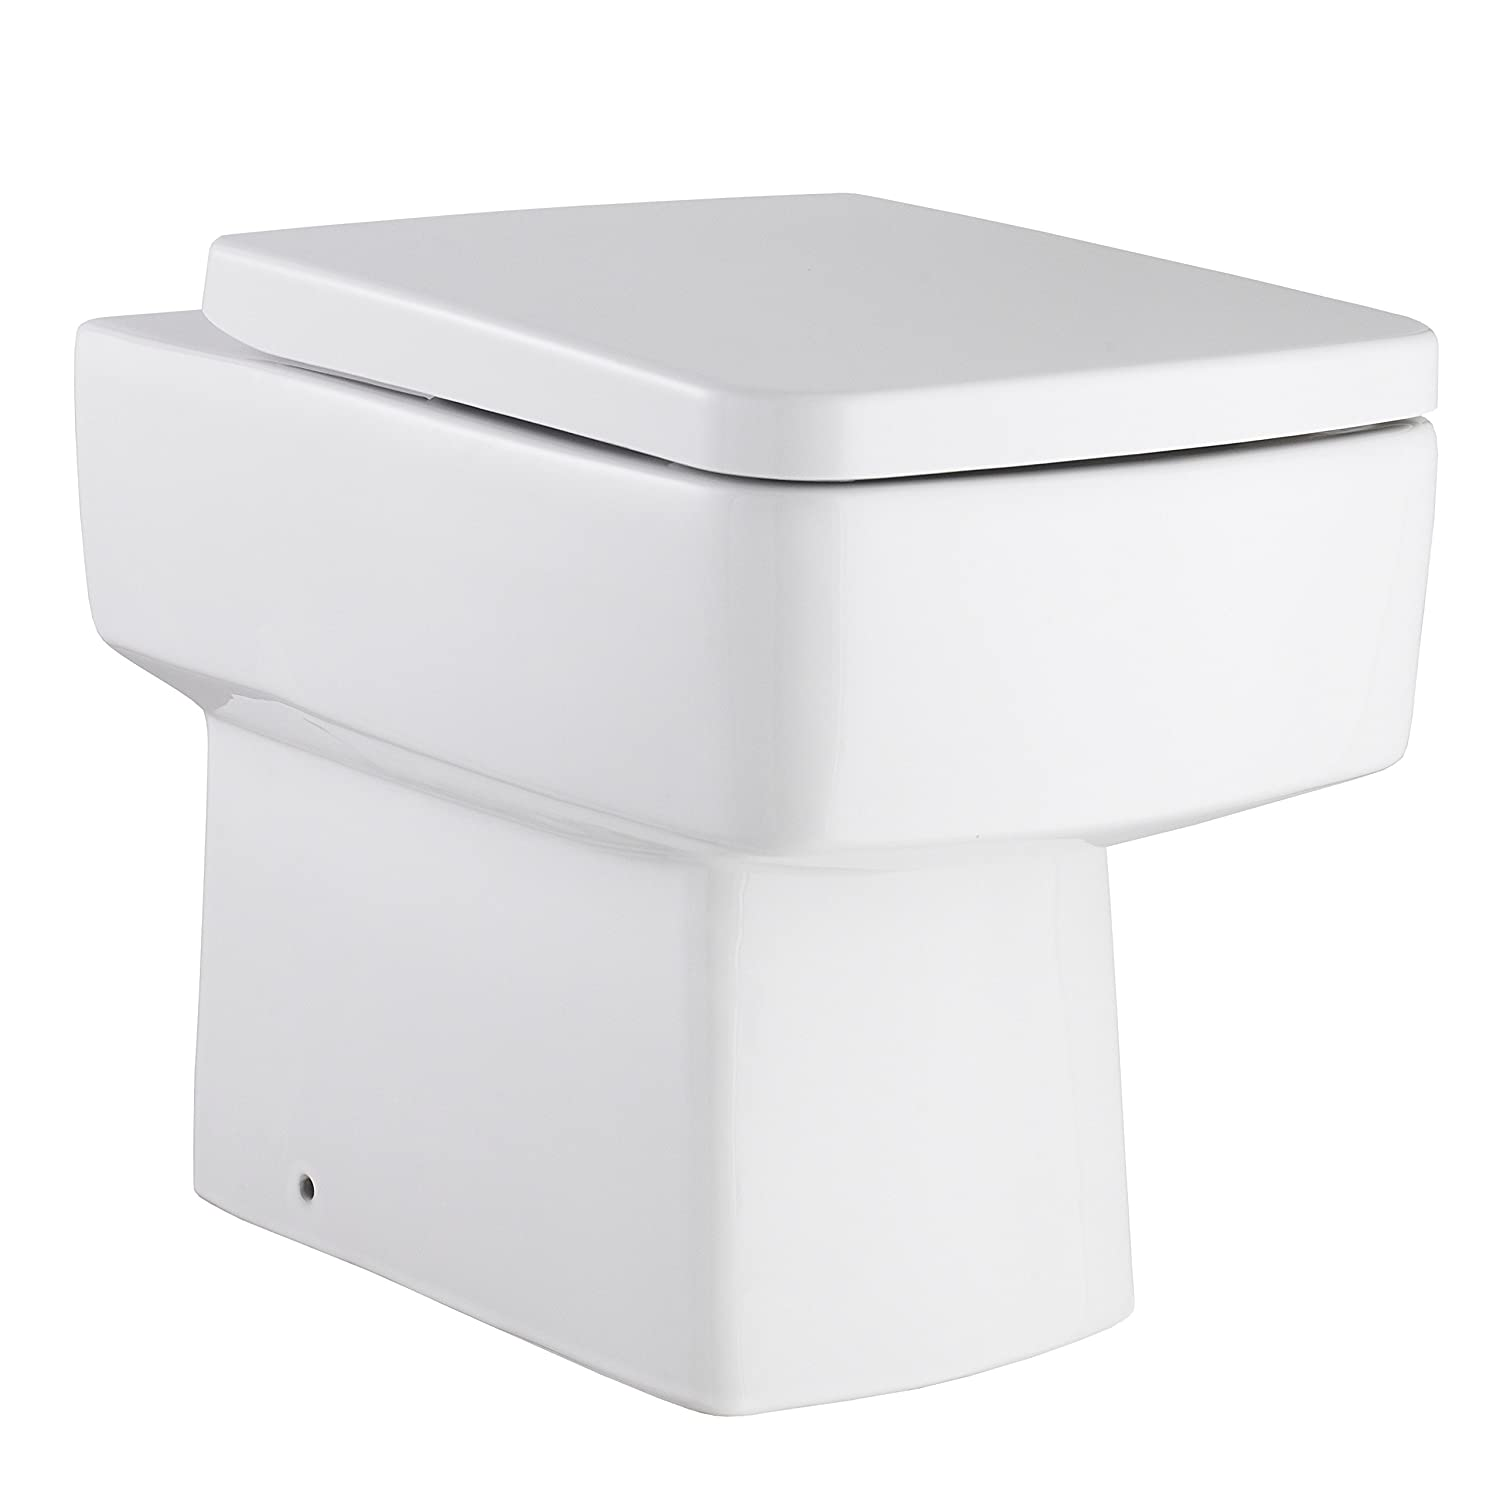 Esq Back to Wall Toilet Pan, Seat Gloss White Modern Square Bathroom En-suite Pottery Ultra